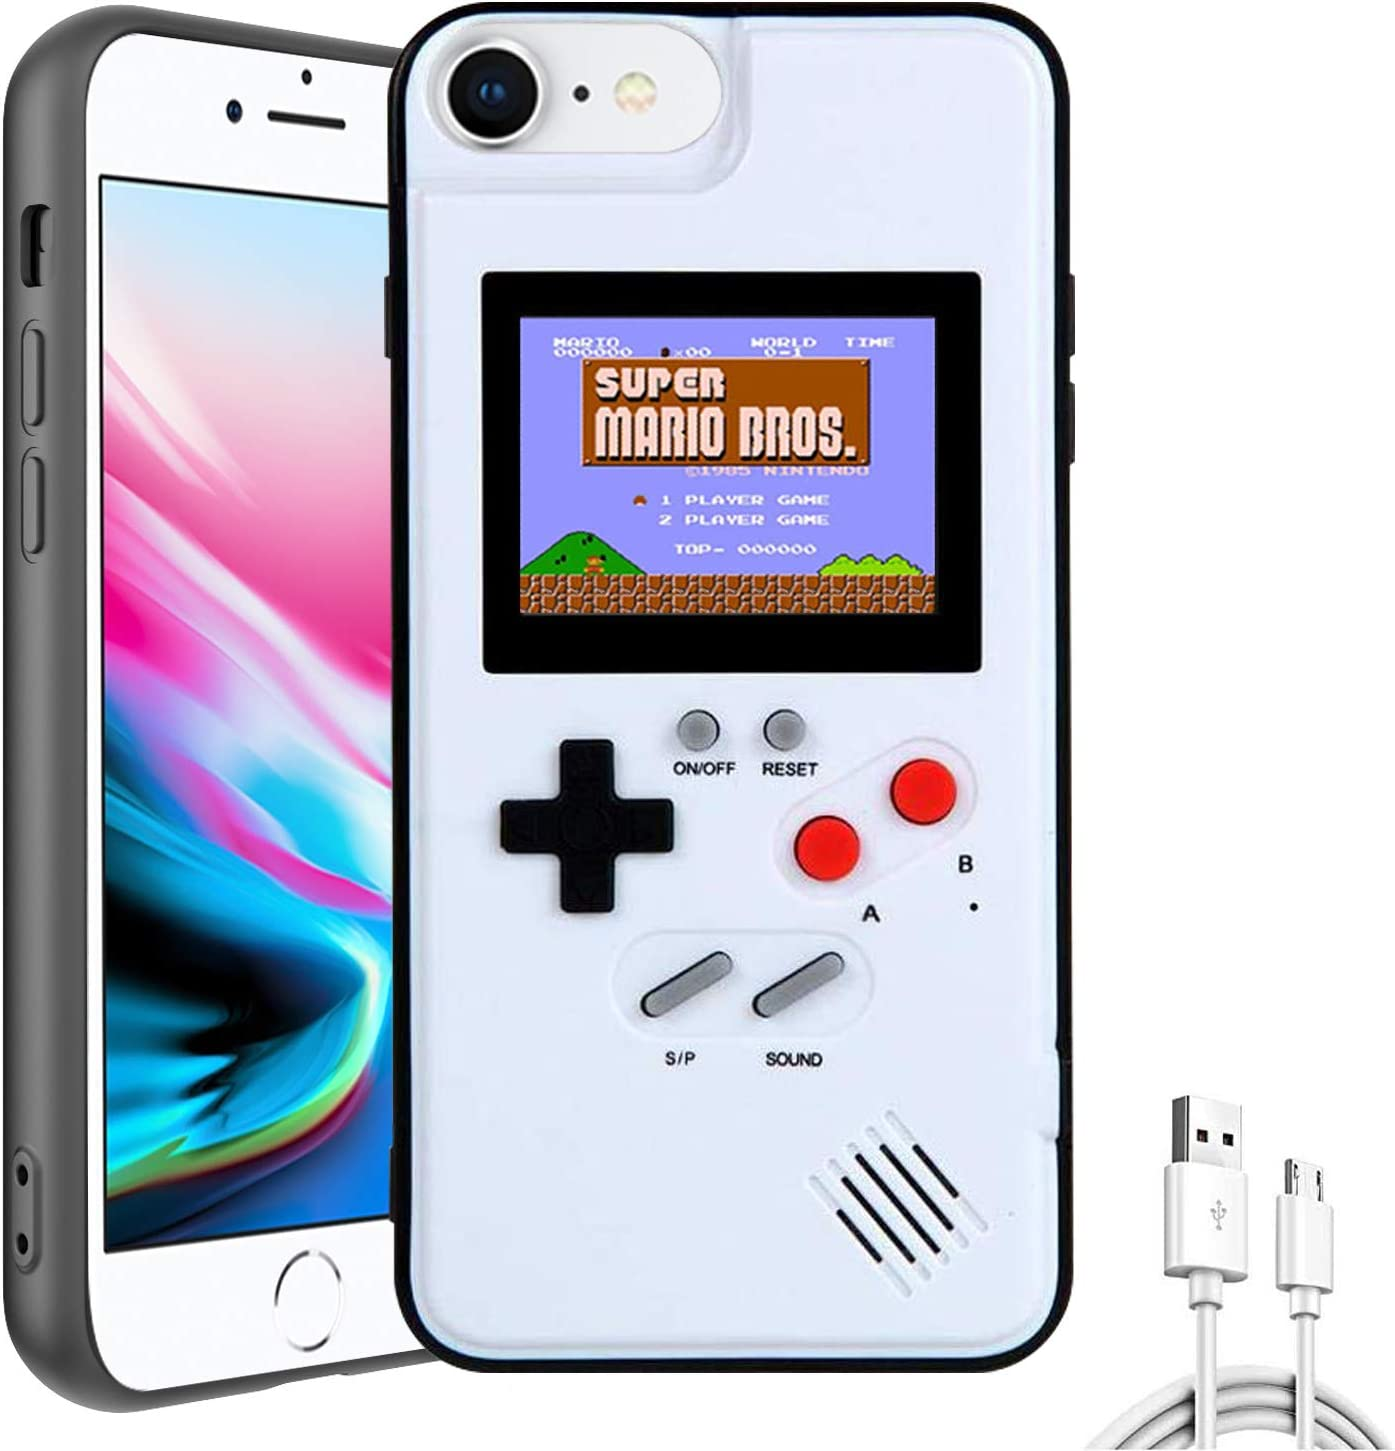 Autbye Gameboy Case for iPhone, Retro 3D Design Style Silicone Protective Case with 36 Small Games, Color Display Shockproof Video Game Phone Case (for iPhone 6/7/8/6S, White)